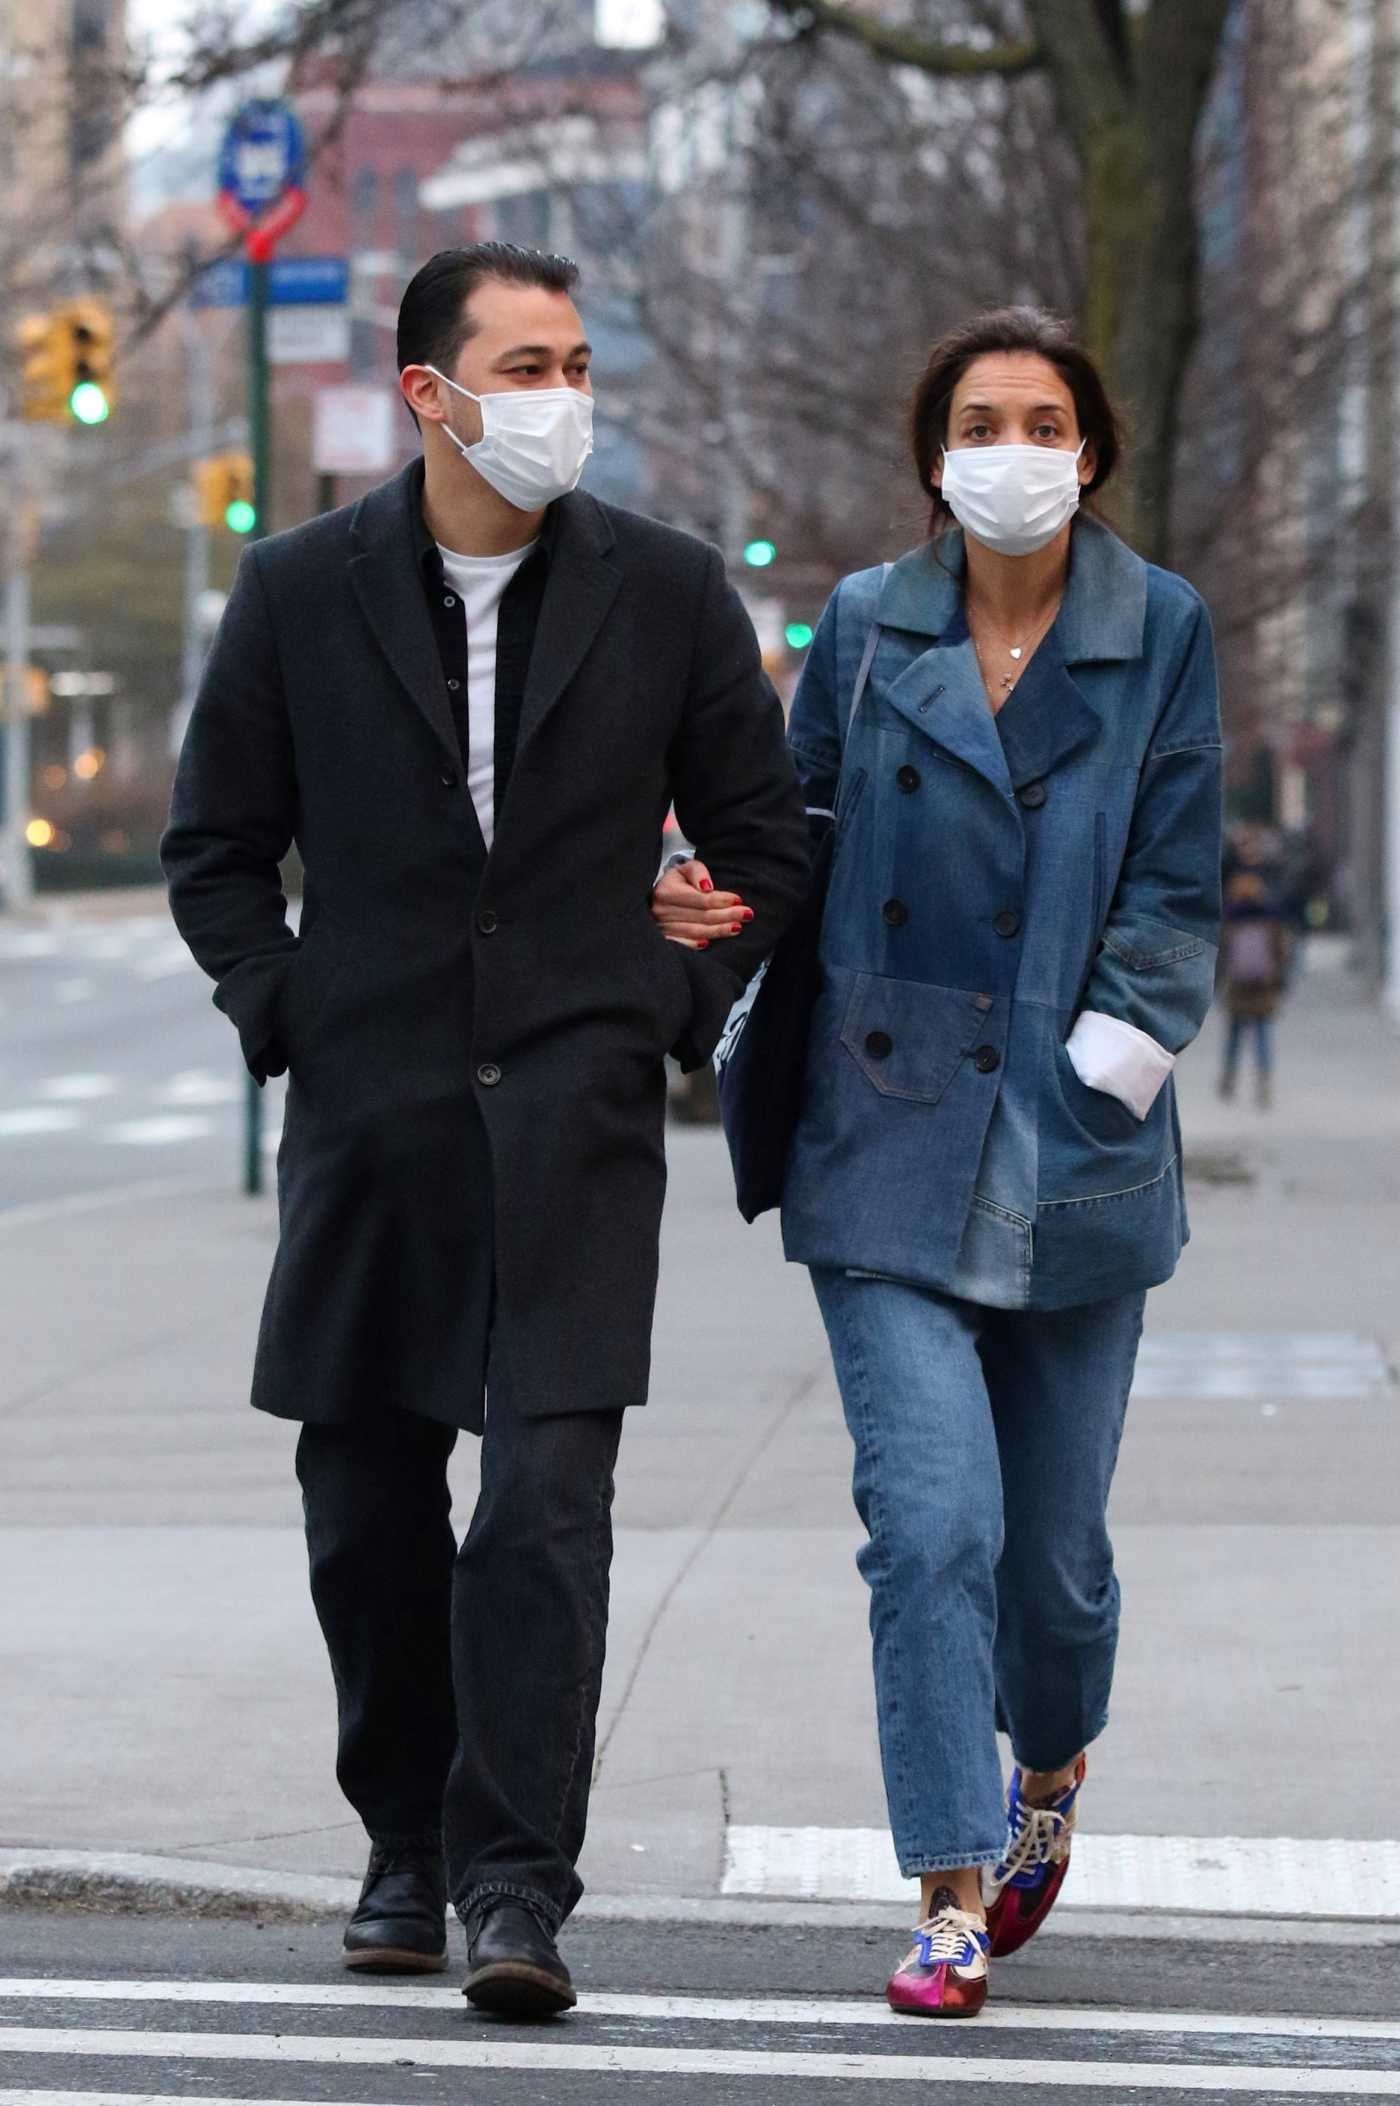 Katie Holmes in a Protective Mask Was Seen Out with Emilio Vitolo Jr. in New York City 01/13/2021